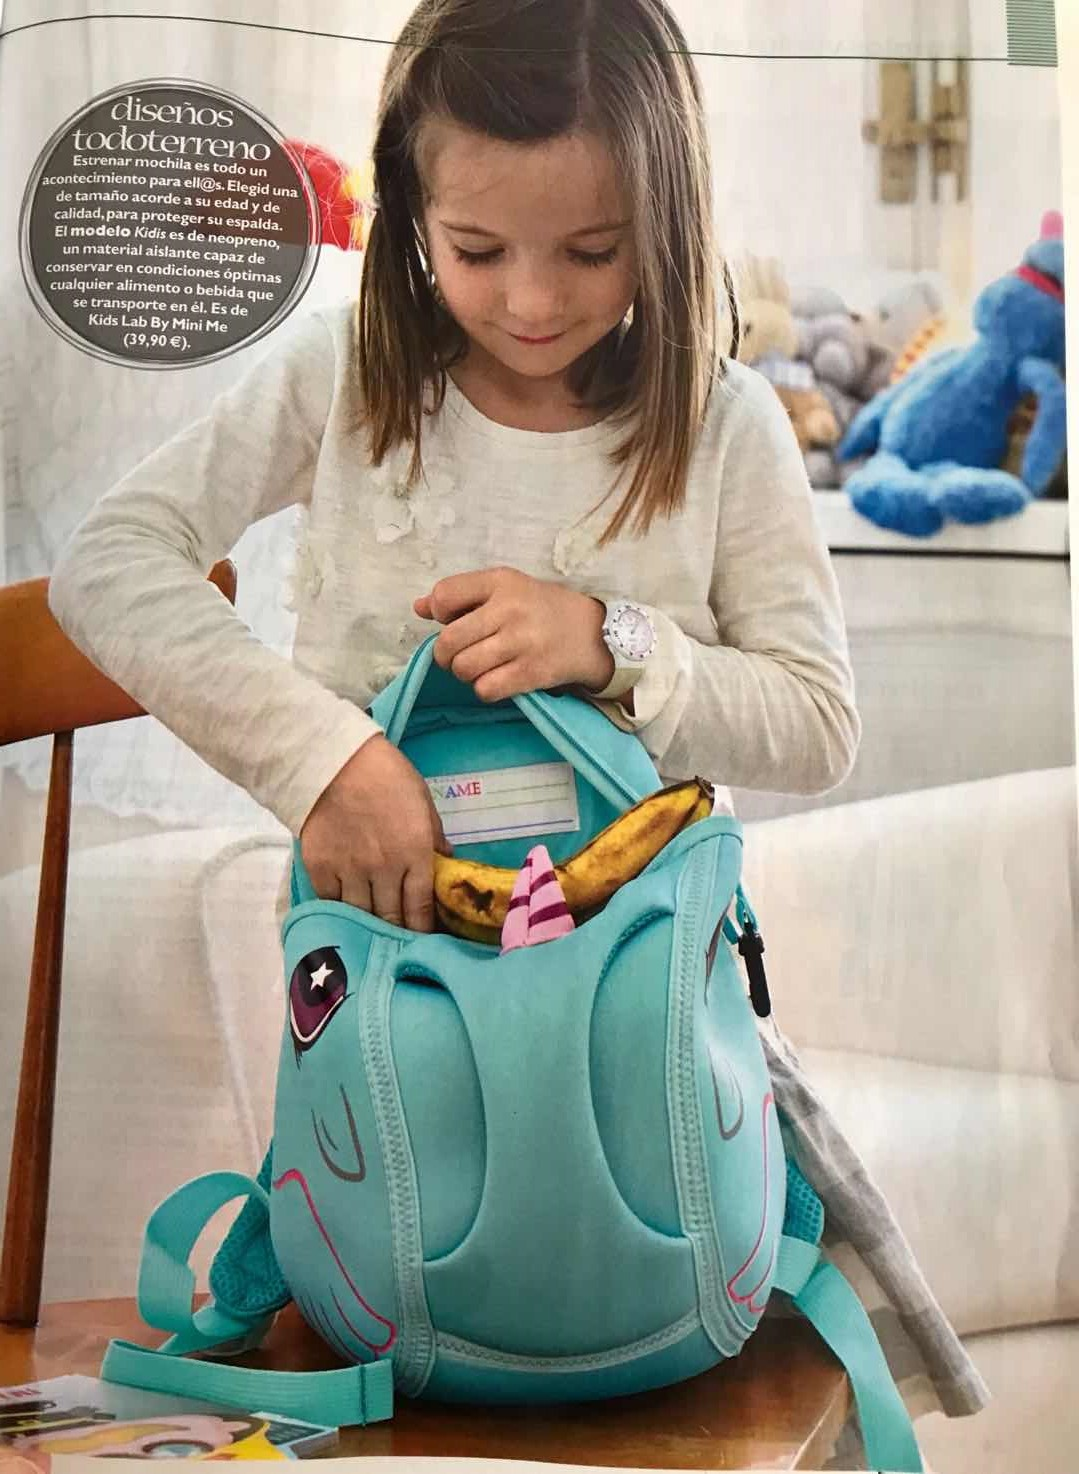 NOHOO-Nohoo High Quality Children Backpacks Opened Up A Good Market For Spanish Customers-3